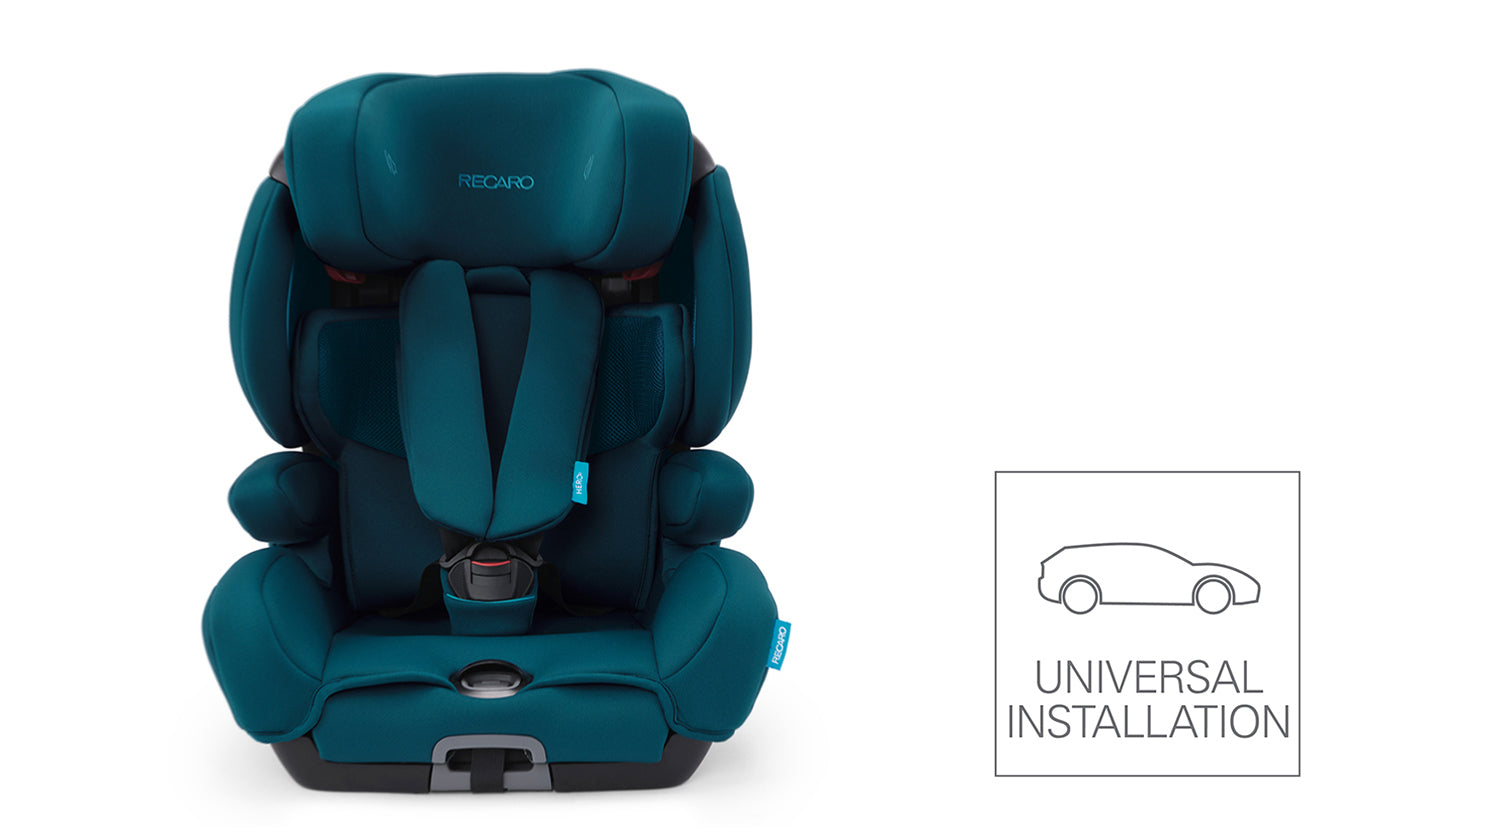 car-seat-tian-elite-design-image-1.jpg